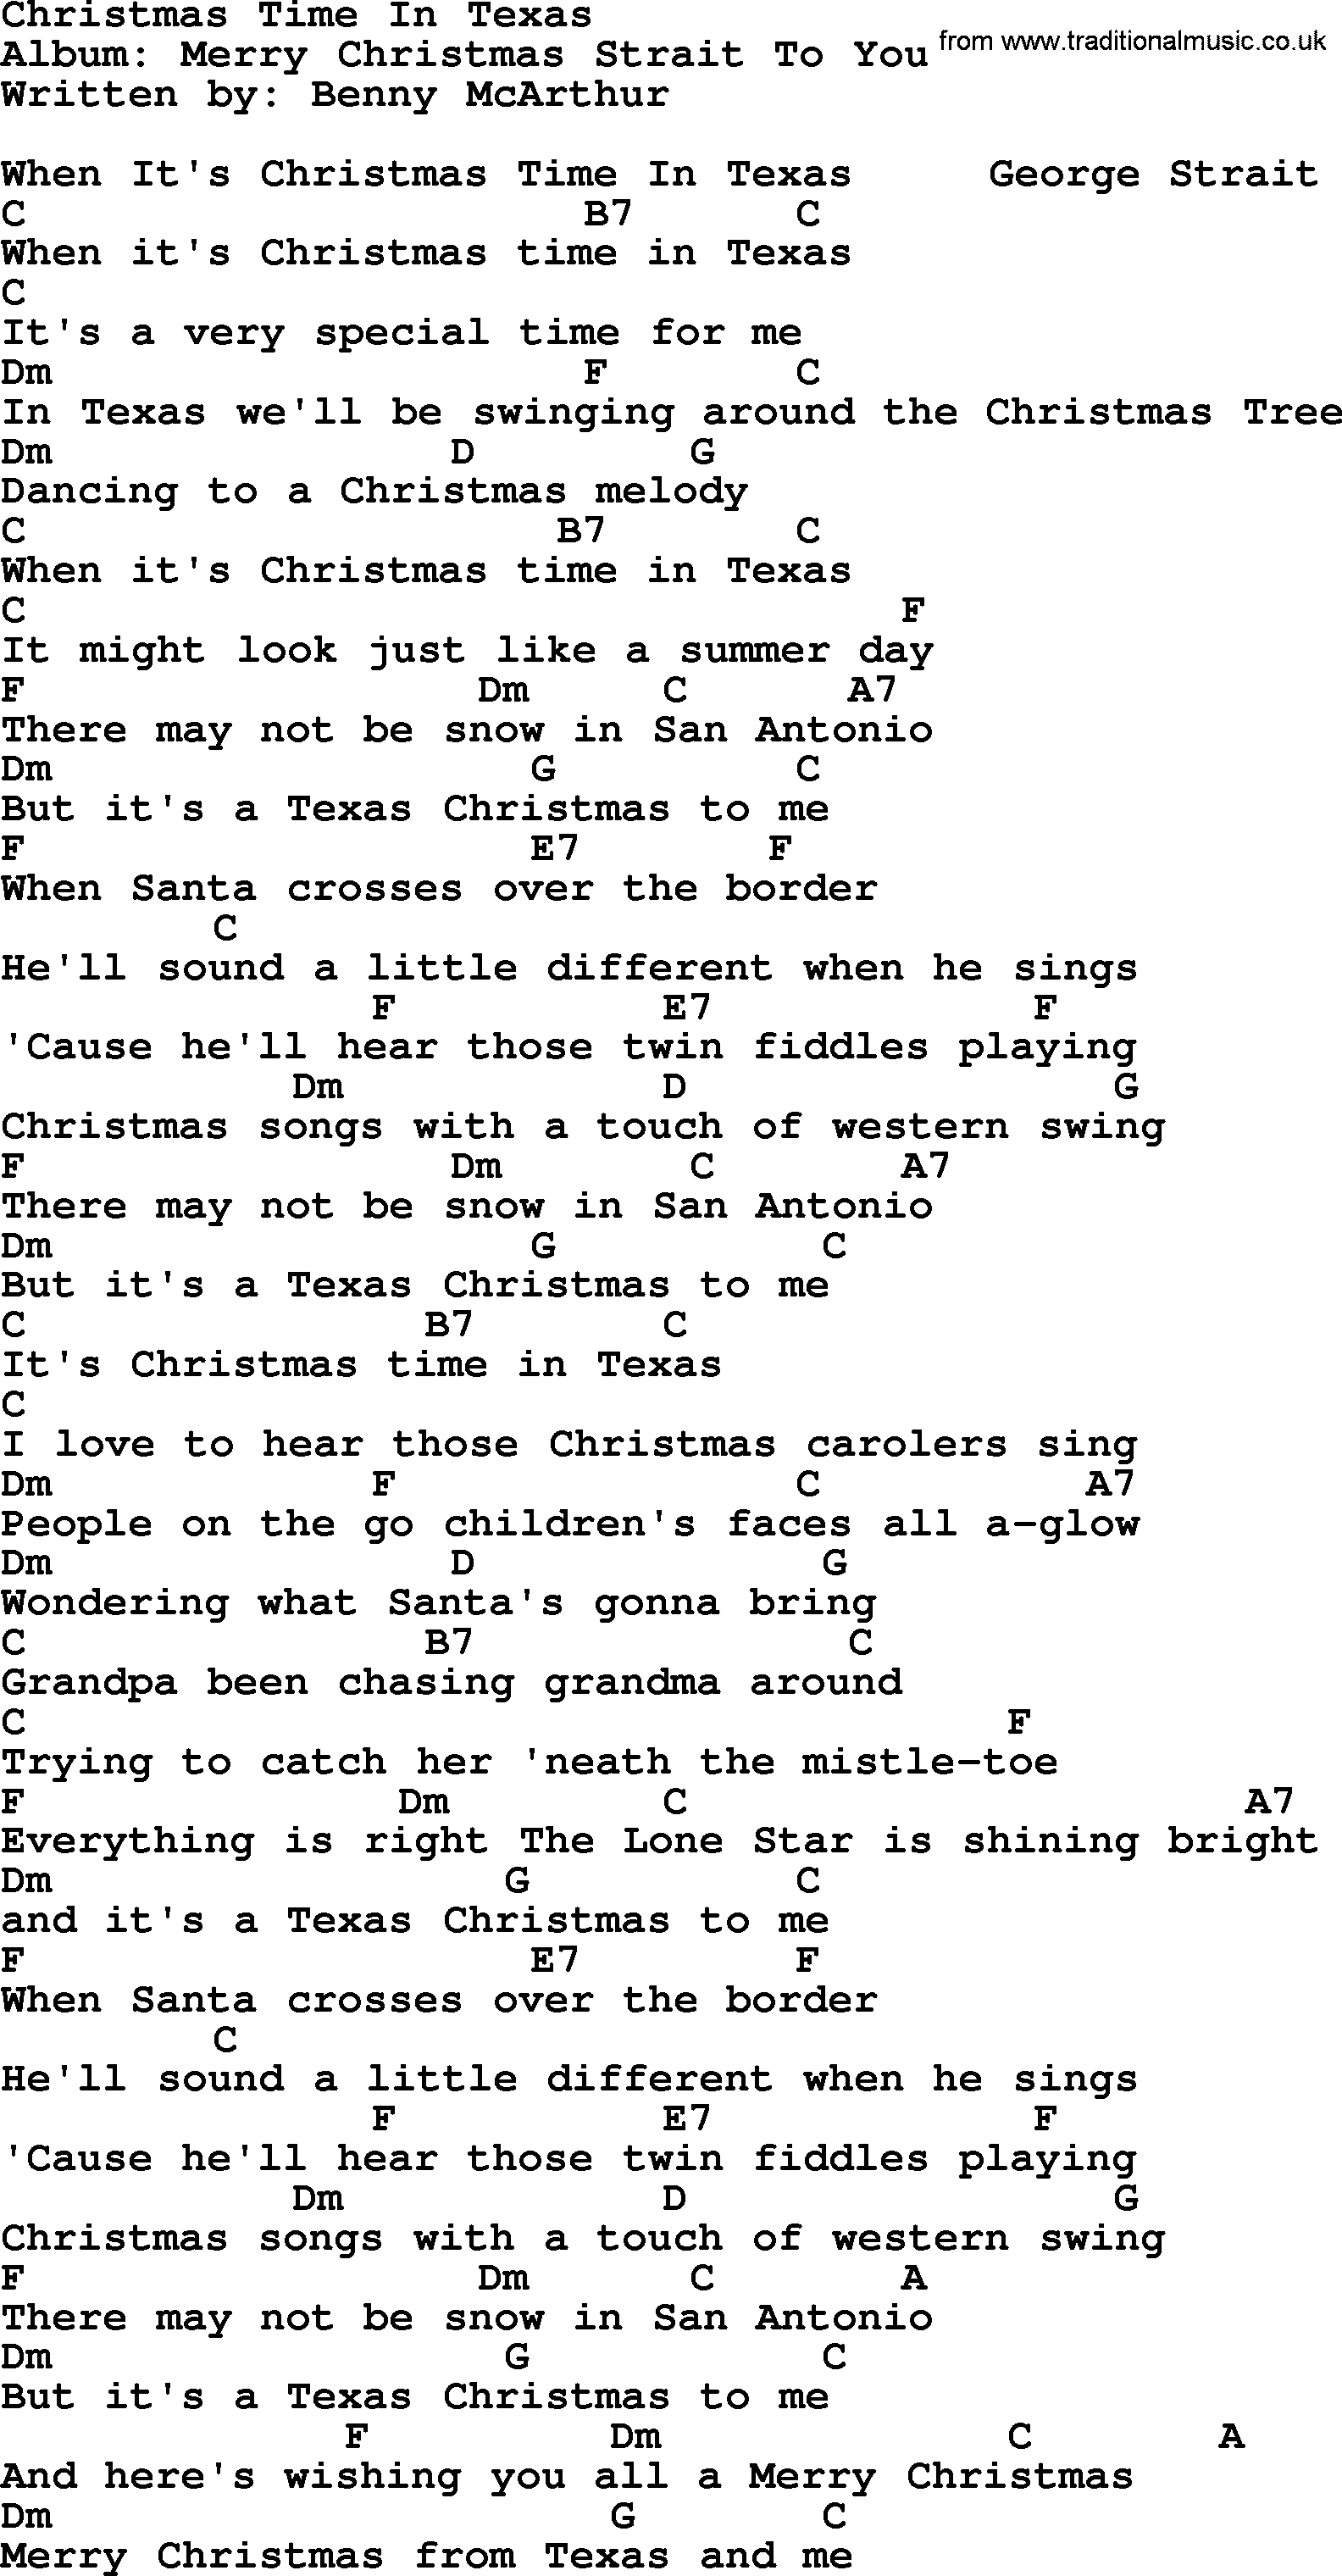 Christmas To Me Lyrics.Christmas Time In Texas By George Strait Lyrics And Chords